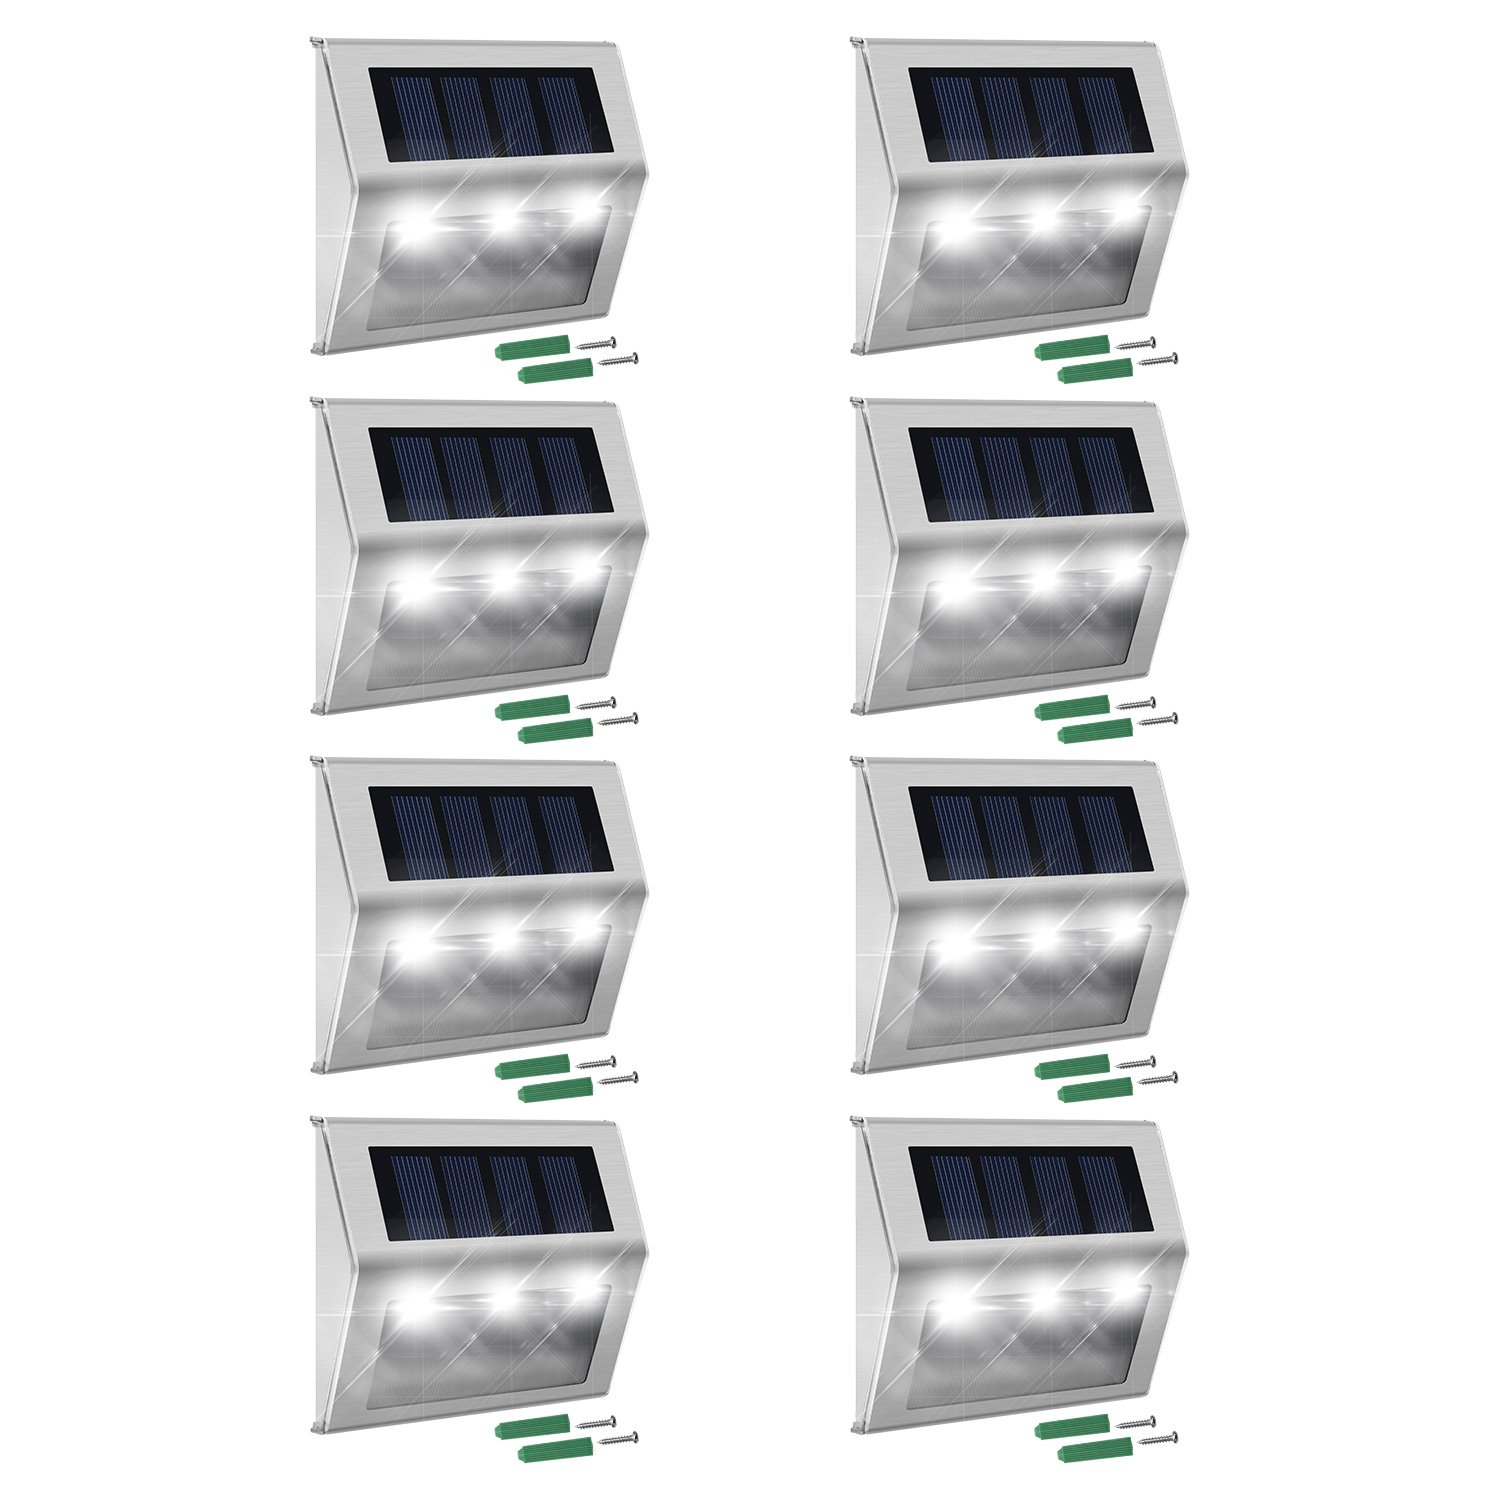 Solar Step Lights with Larger Battery Capacity JACKYLED 8-Pack Stainless Steel Bright 3 LED Solar Powered Deck Lights Weatherproof Outdoor Lighting for Steps Stairs Decks Fences Paths Patio Pathway by JACKYLED